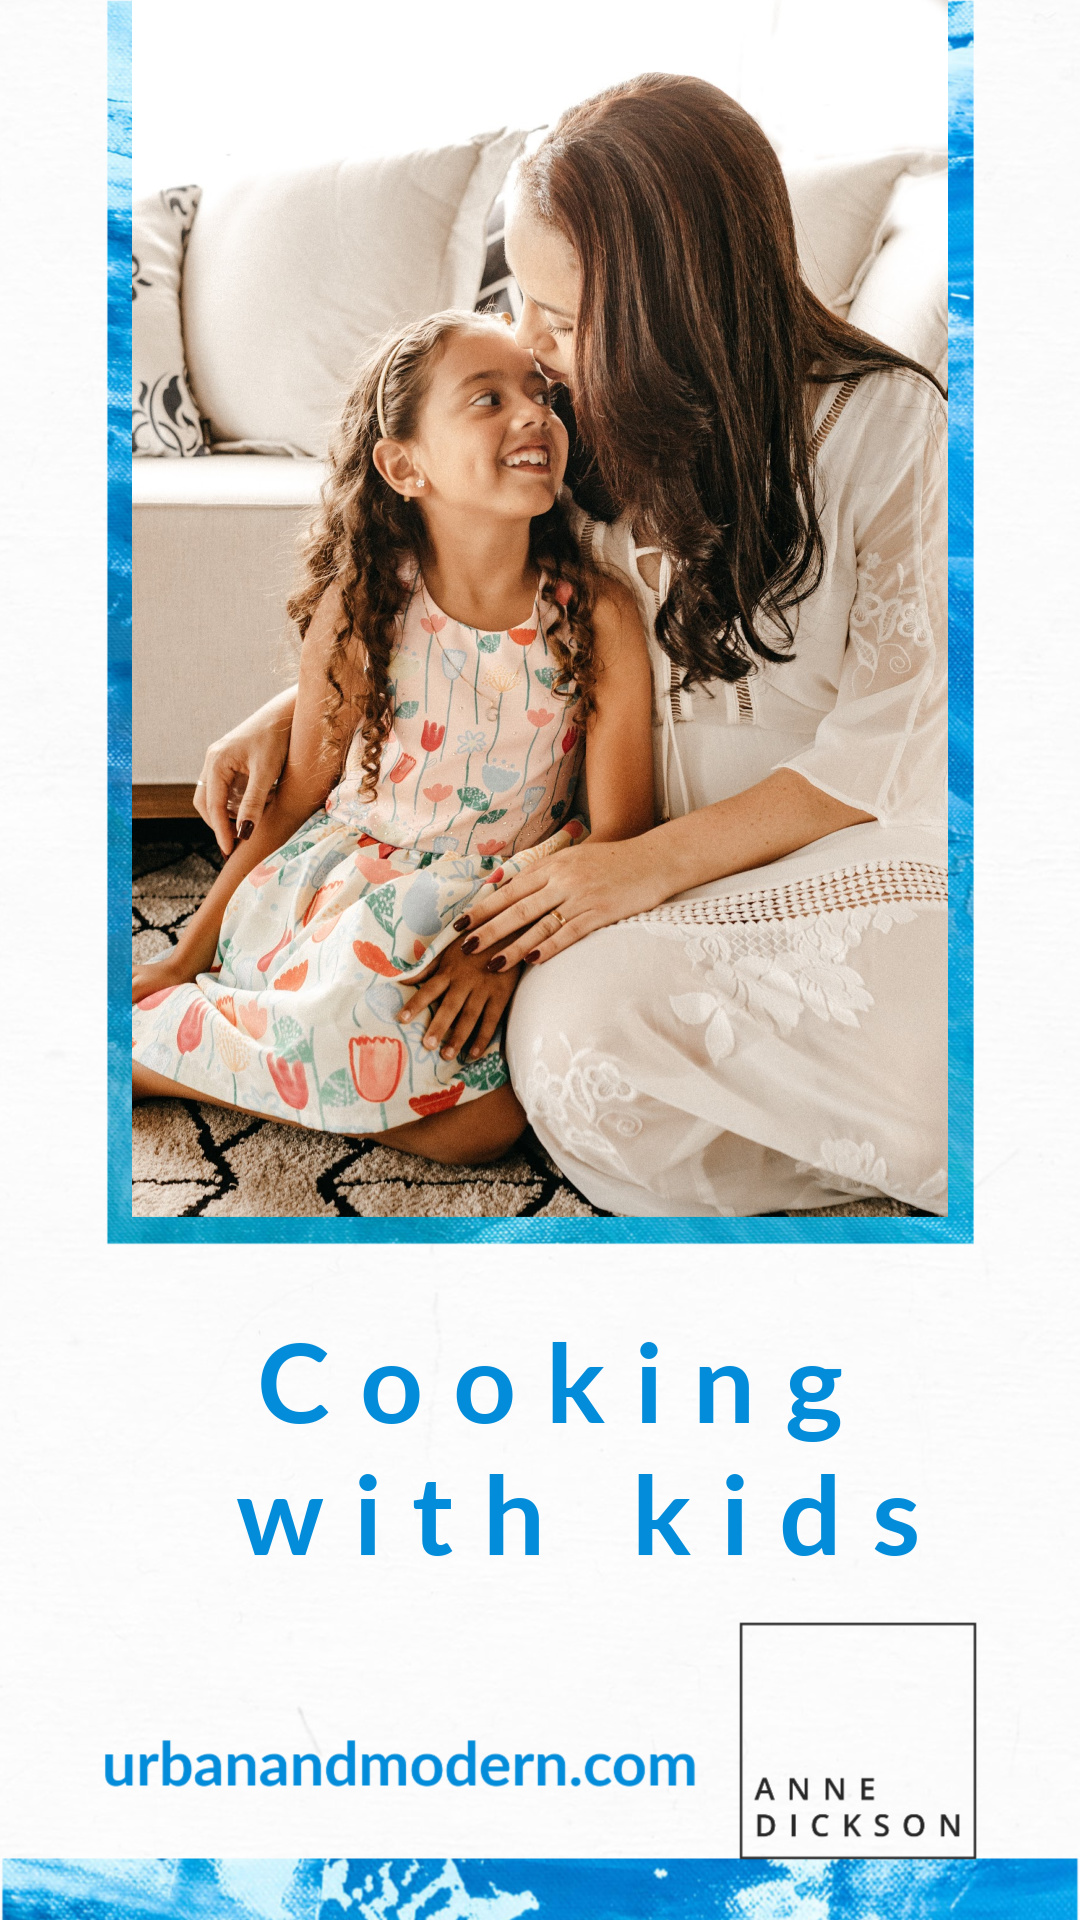 Cooking with kids – tips to keep them entertained